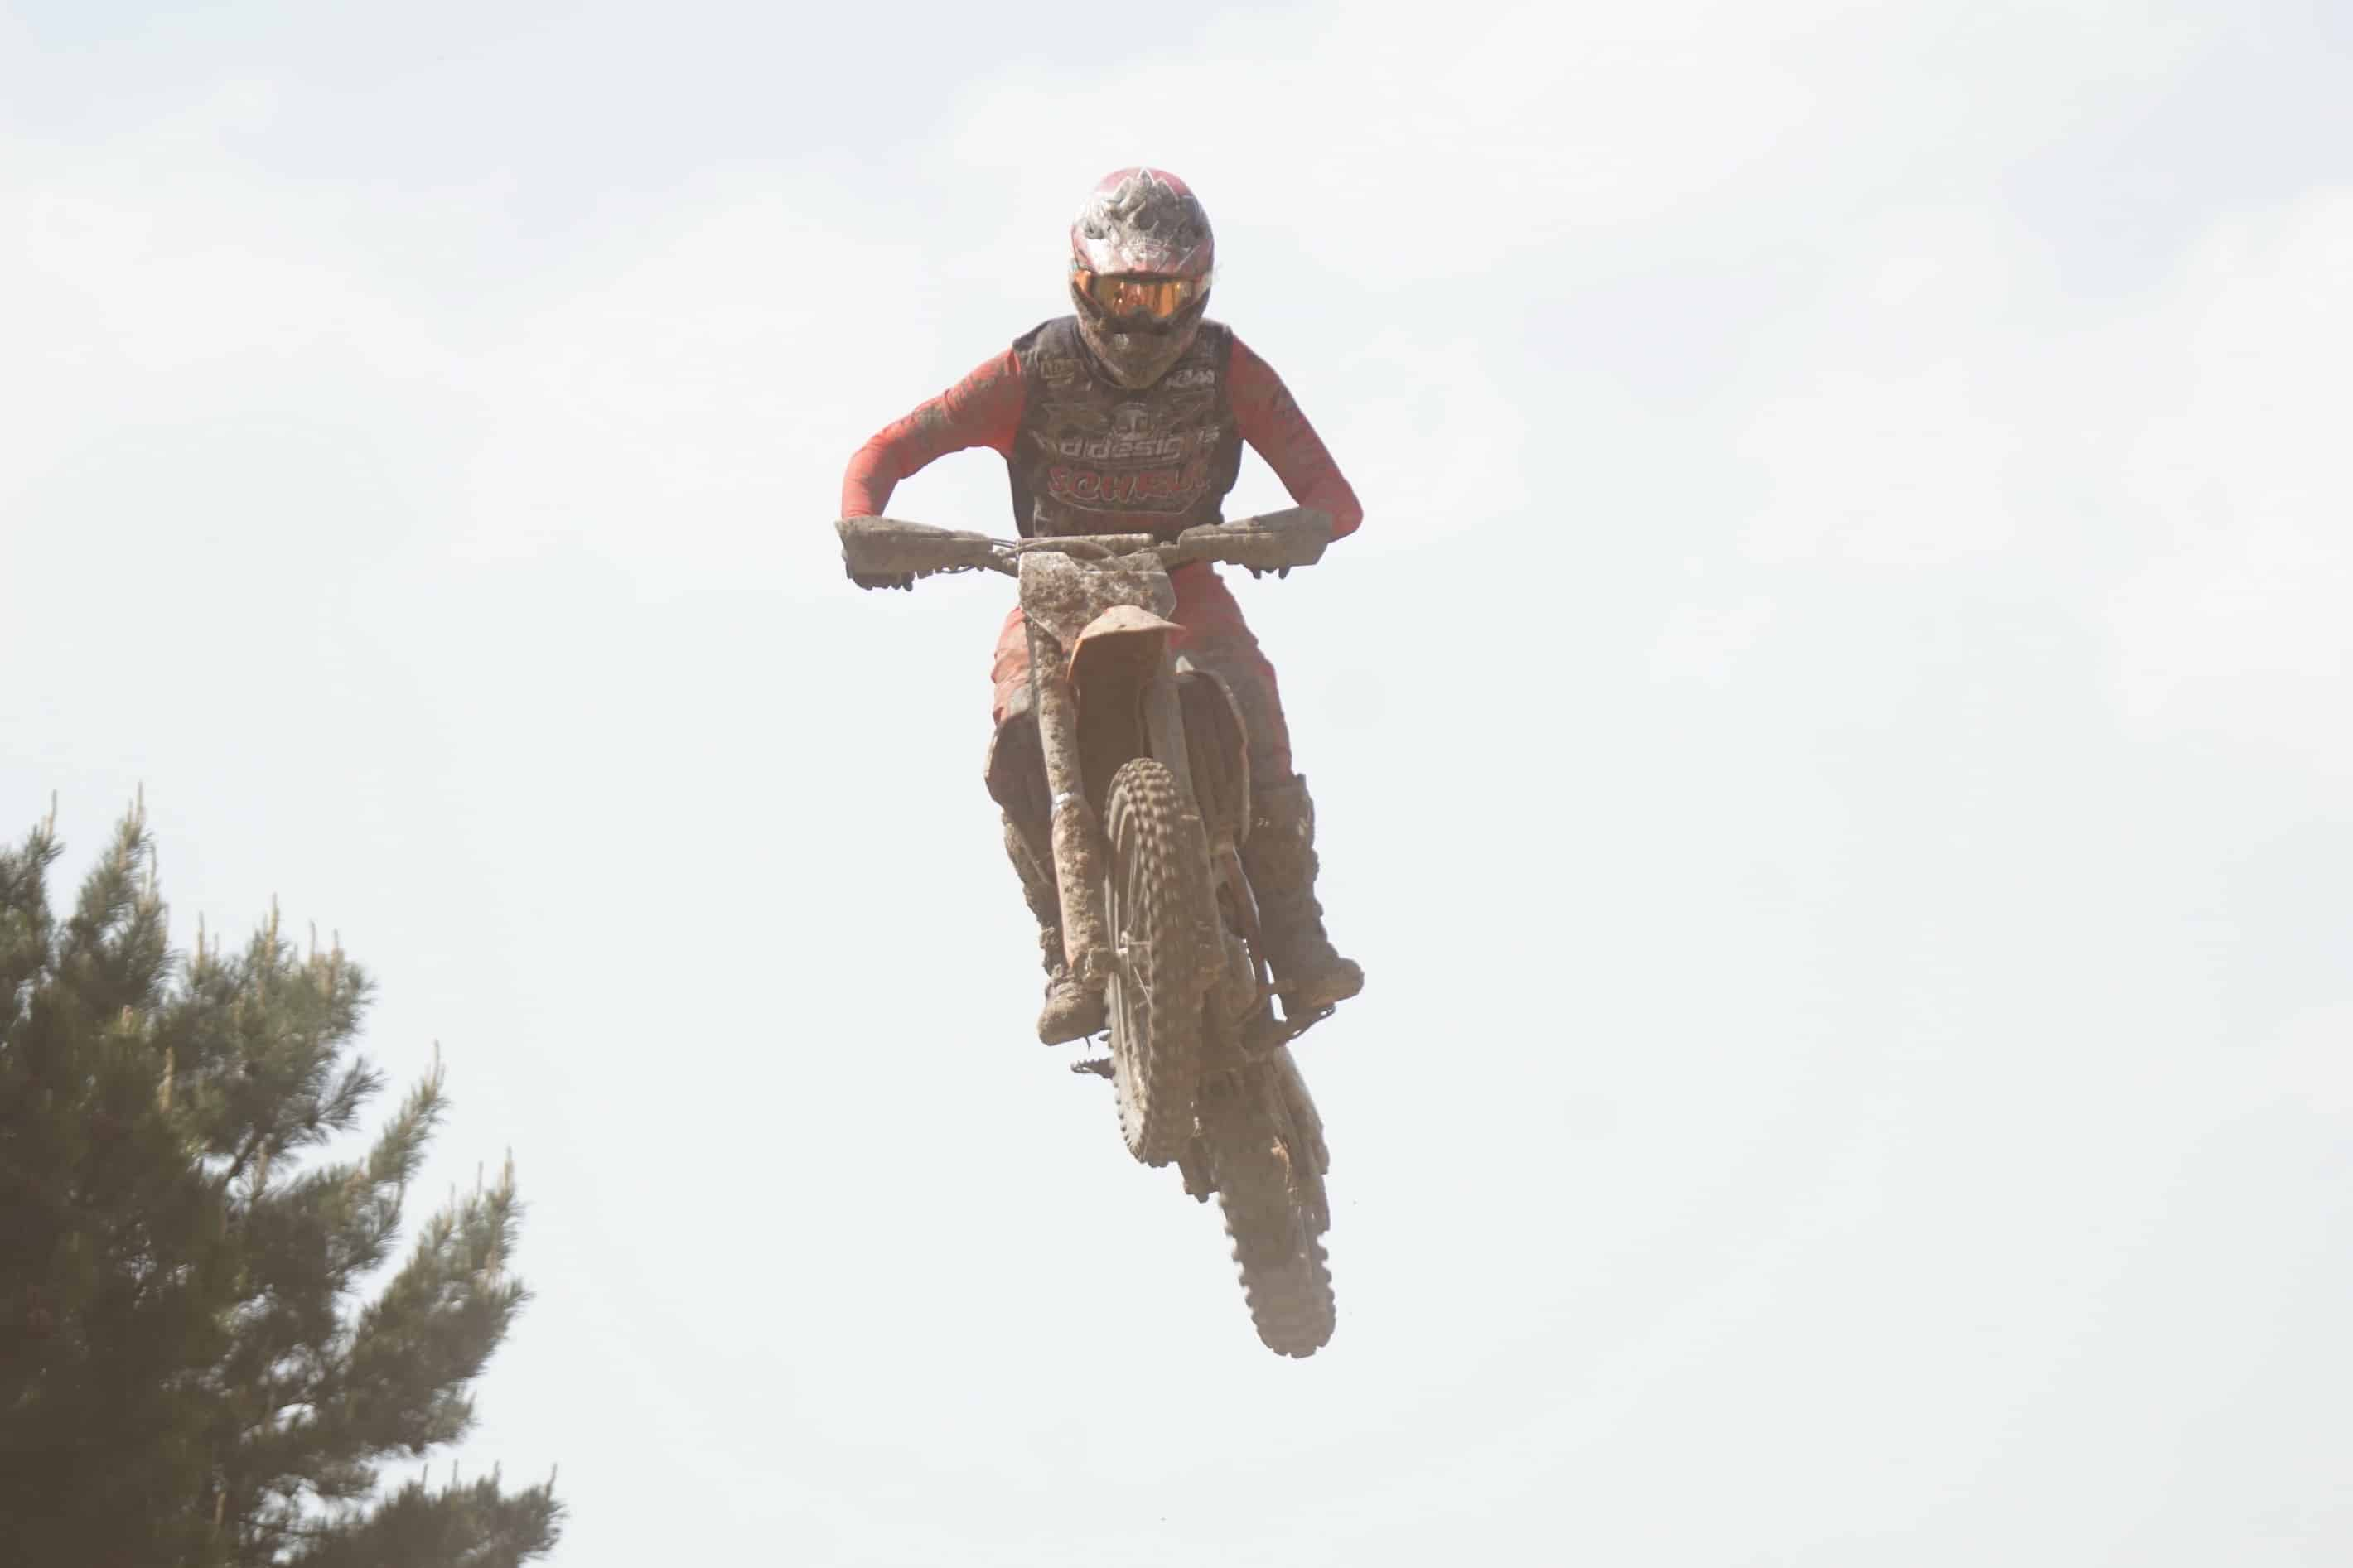 DSC 731_Moto Cross Sittendorf Teil1 am 29.04.2018